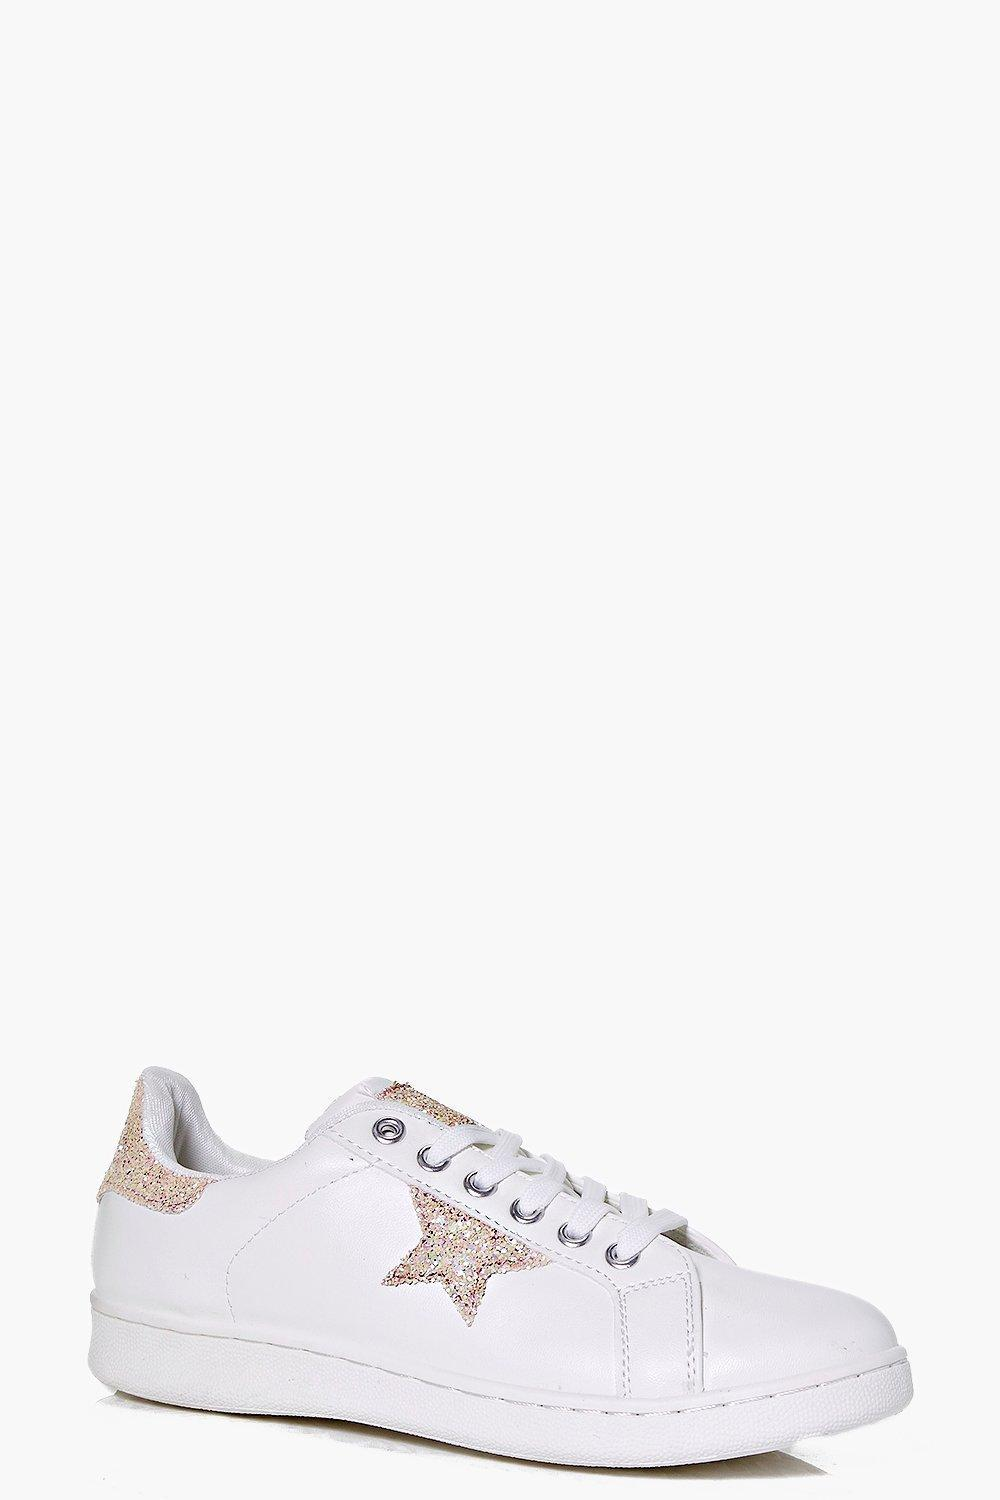 Star Detail Lace Up Trainer Pink - secondary colour: white; predominant colour: blush; occasions: casual; material: faux leather; heel height: flat; toe: round toe; style: trainers; finish: plain; pattern: patterned/print; season: s/s 2016; wardrobe: highlight